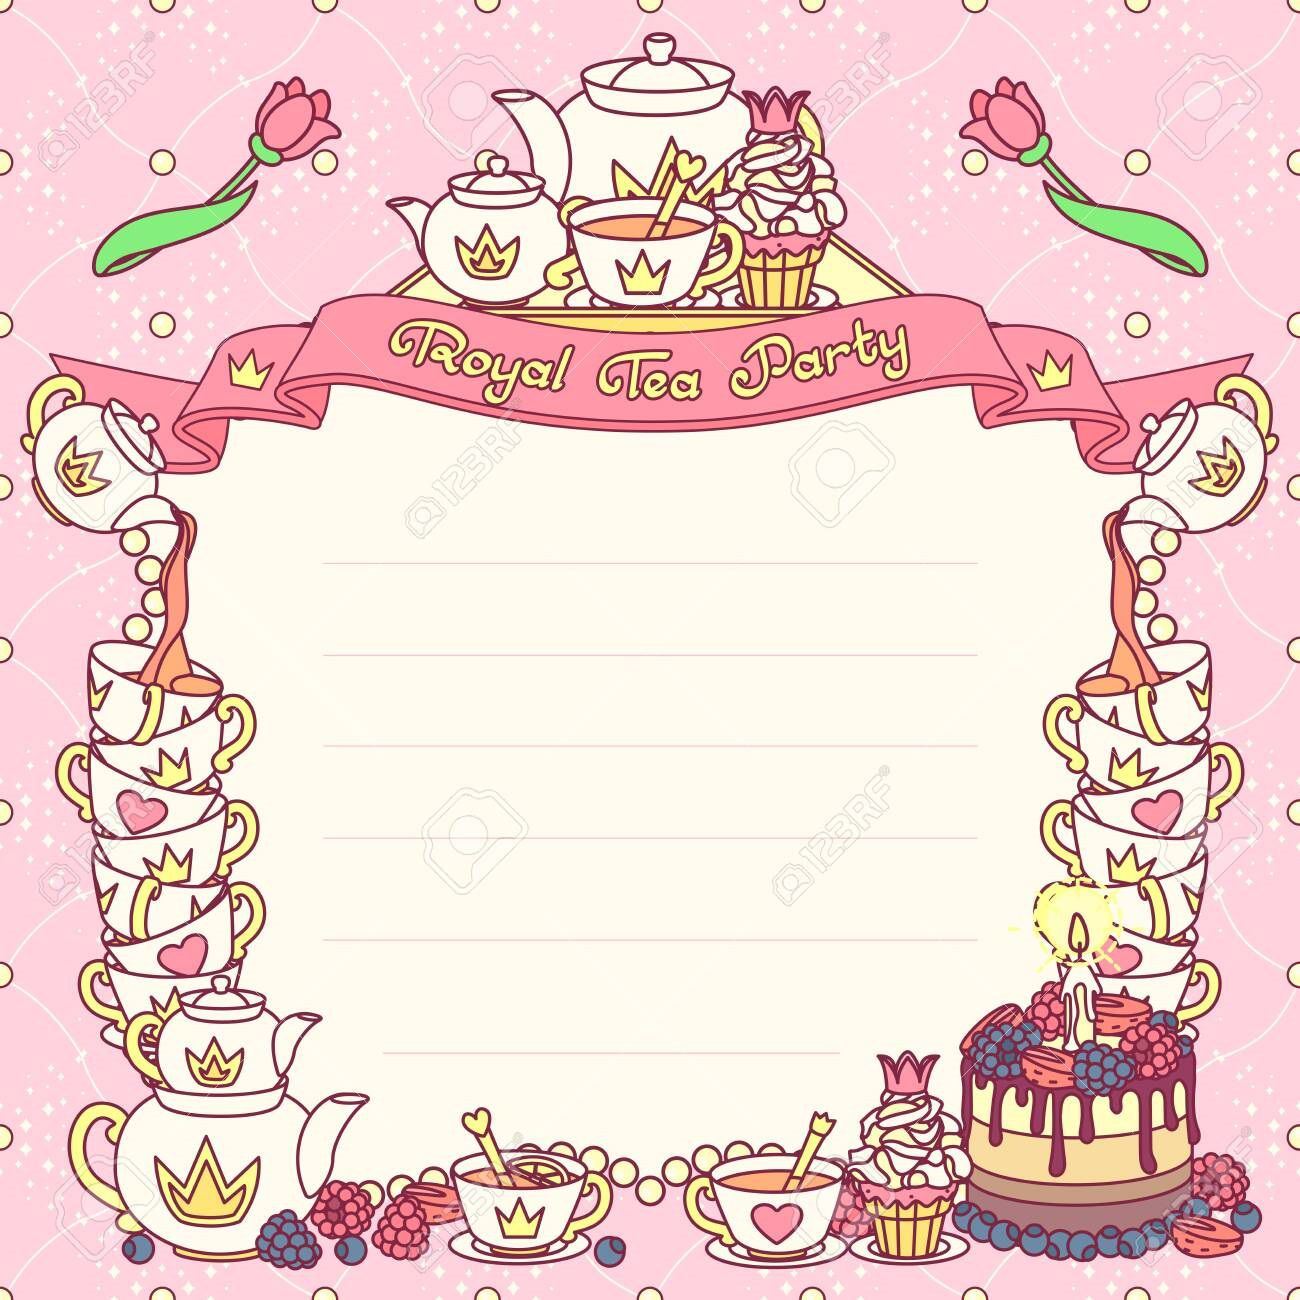 006 Sensational Tea Party Invitation Template Picture  Vintage Free Editable Card PdfFull